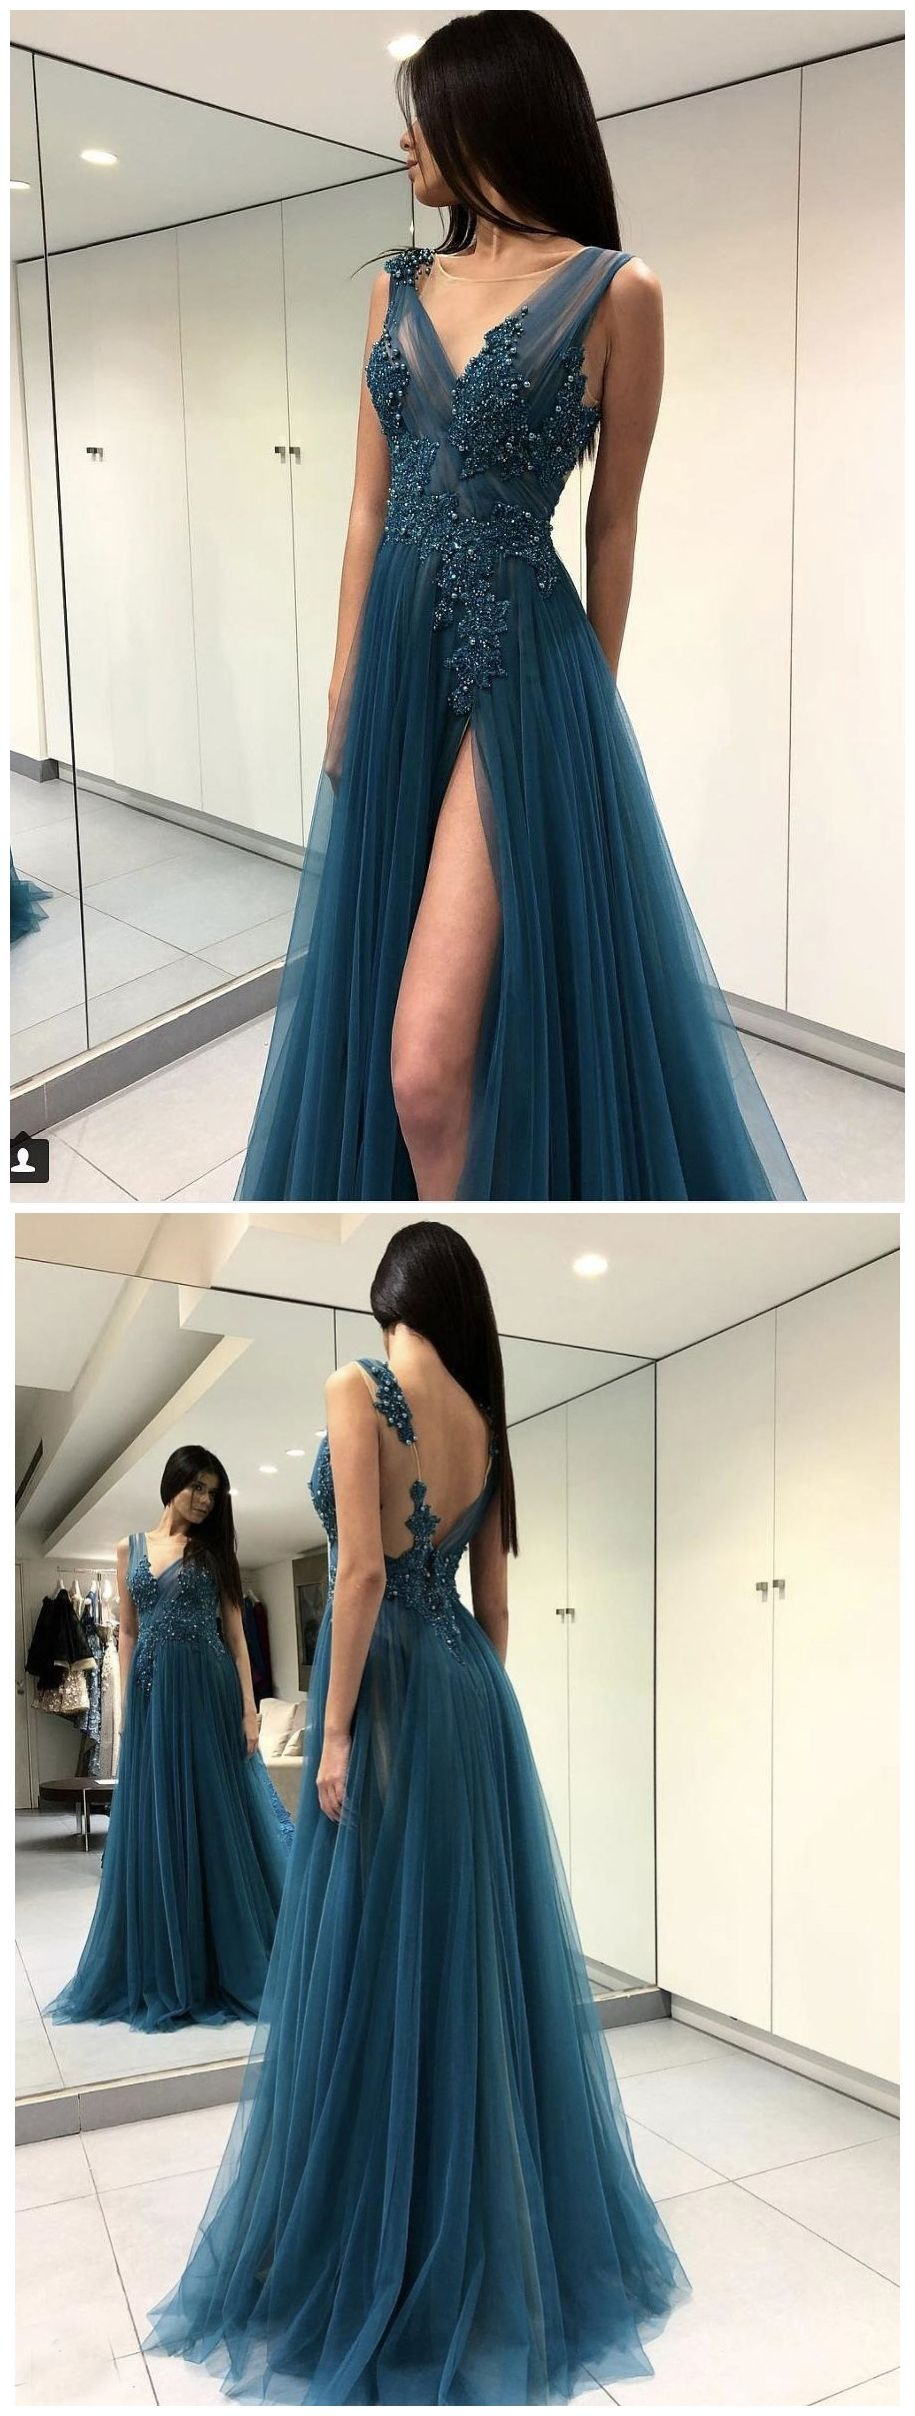 Long see through thigh slit blue prom dresses backless beaded lace